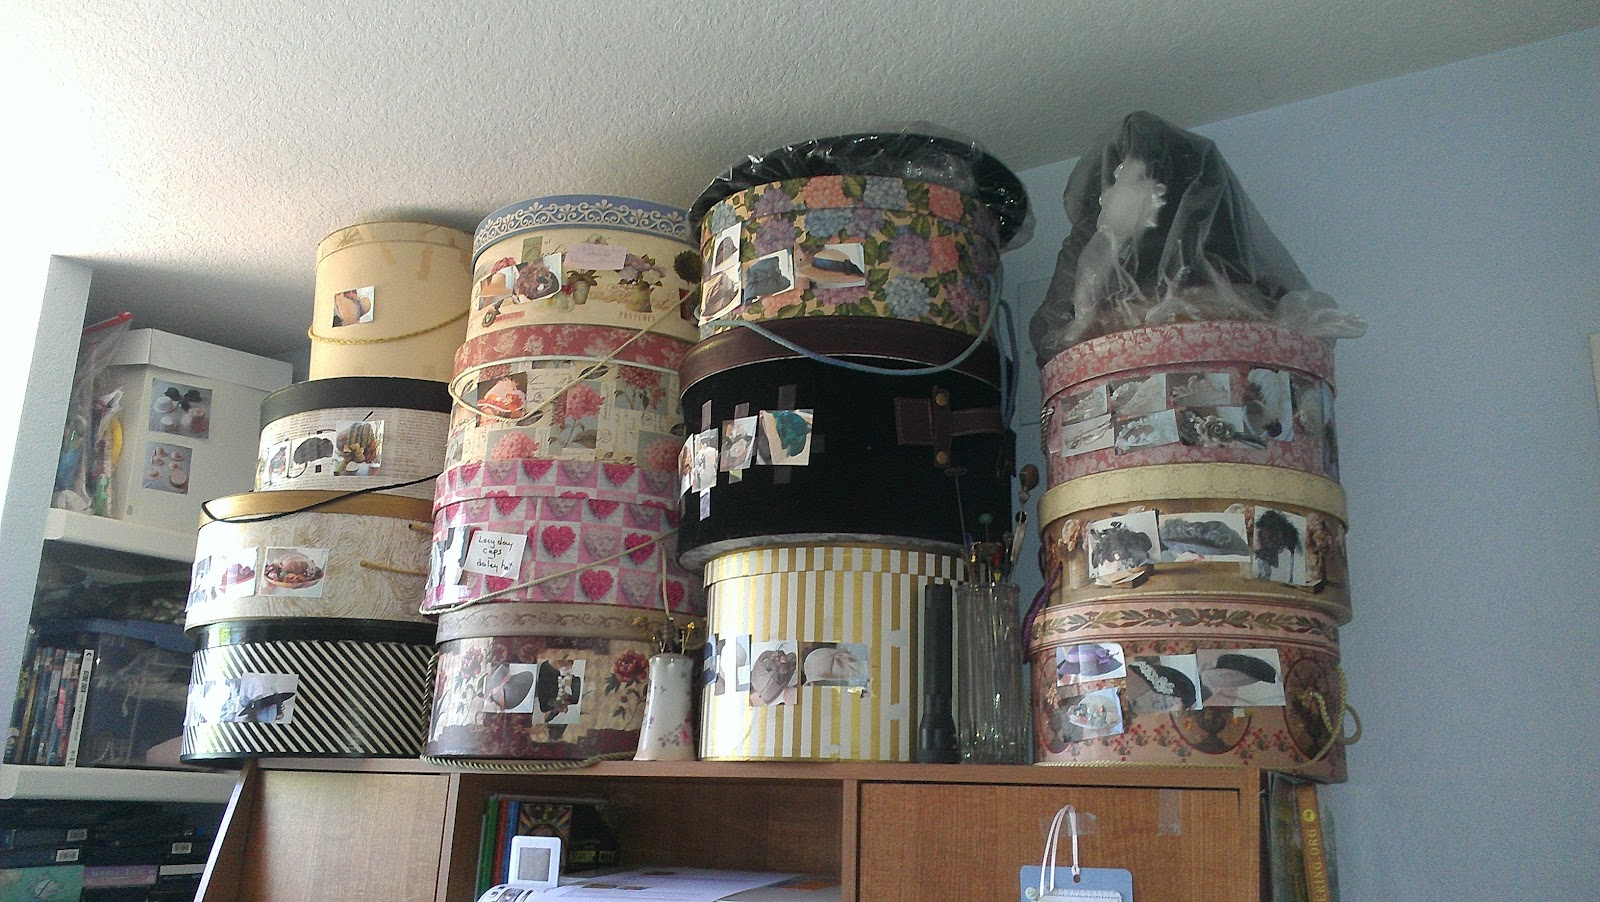 Thatu0027s Not All Of Them But Theyu0027re Reached The Ceiling Already. Thereu0027s  Still The Short Stack Of Hats Behind Me, And A Square Hat Box That Is  Temporary ...